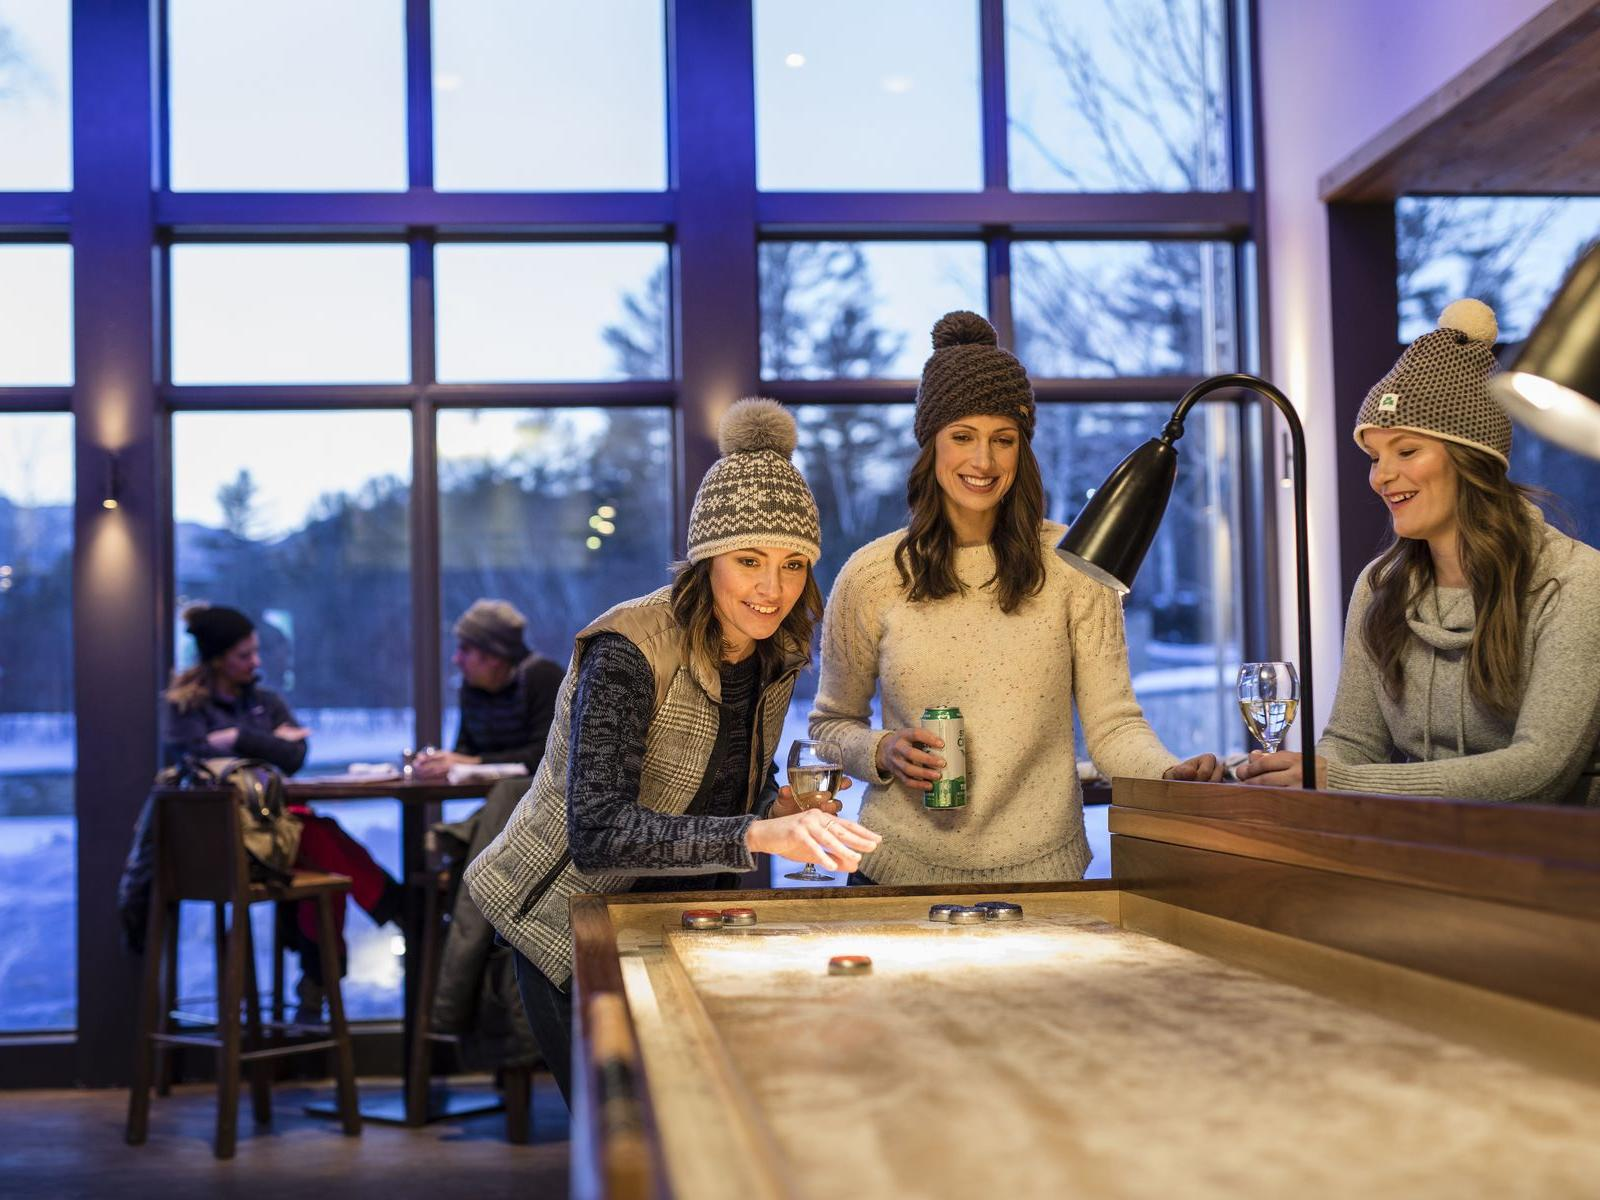 Group of friends playing on a shuffleboard table.